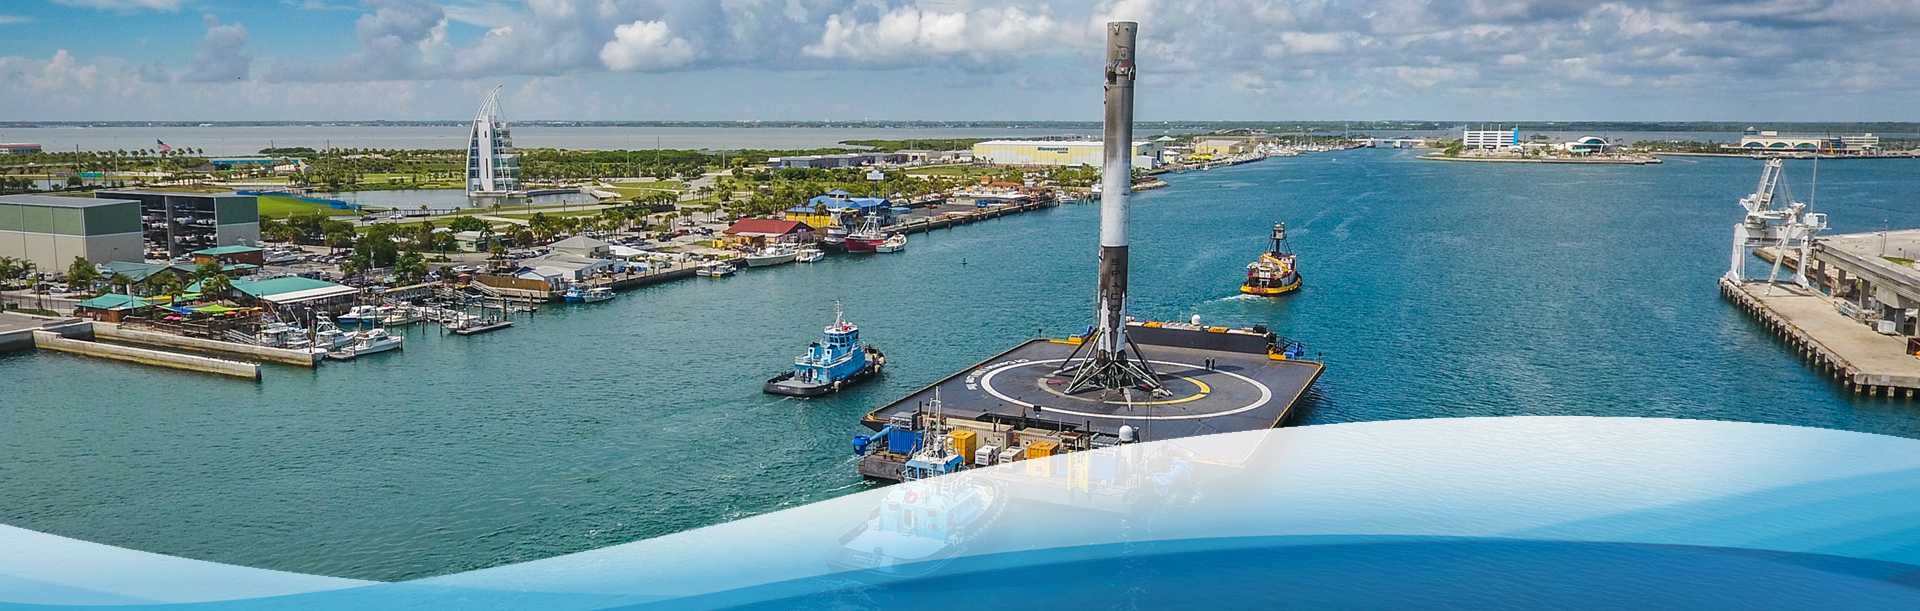 /PortCanaveral/media/Port-Canaveral/Slideshow%20Images/2017/Recreation.png?ext=.png